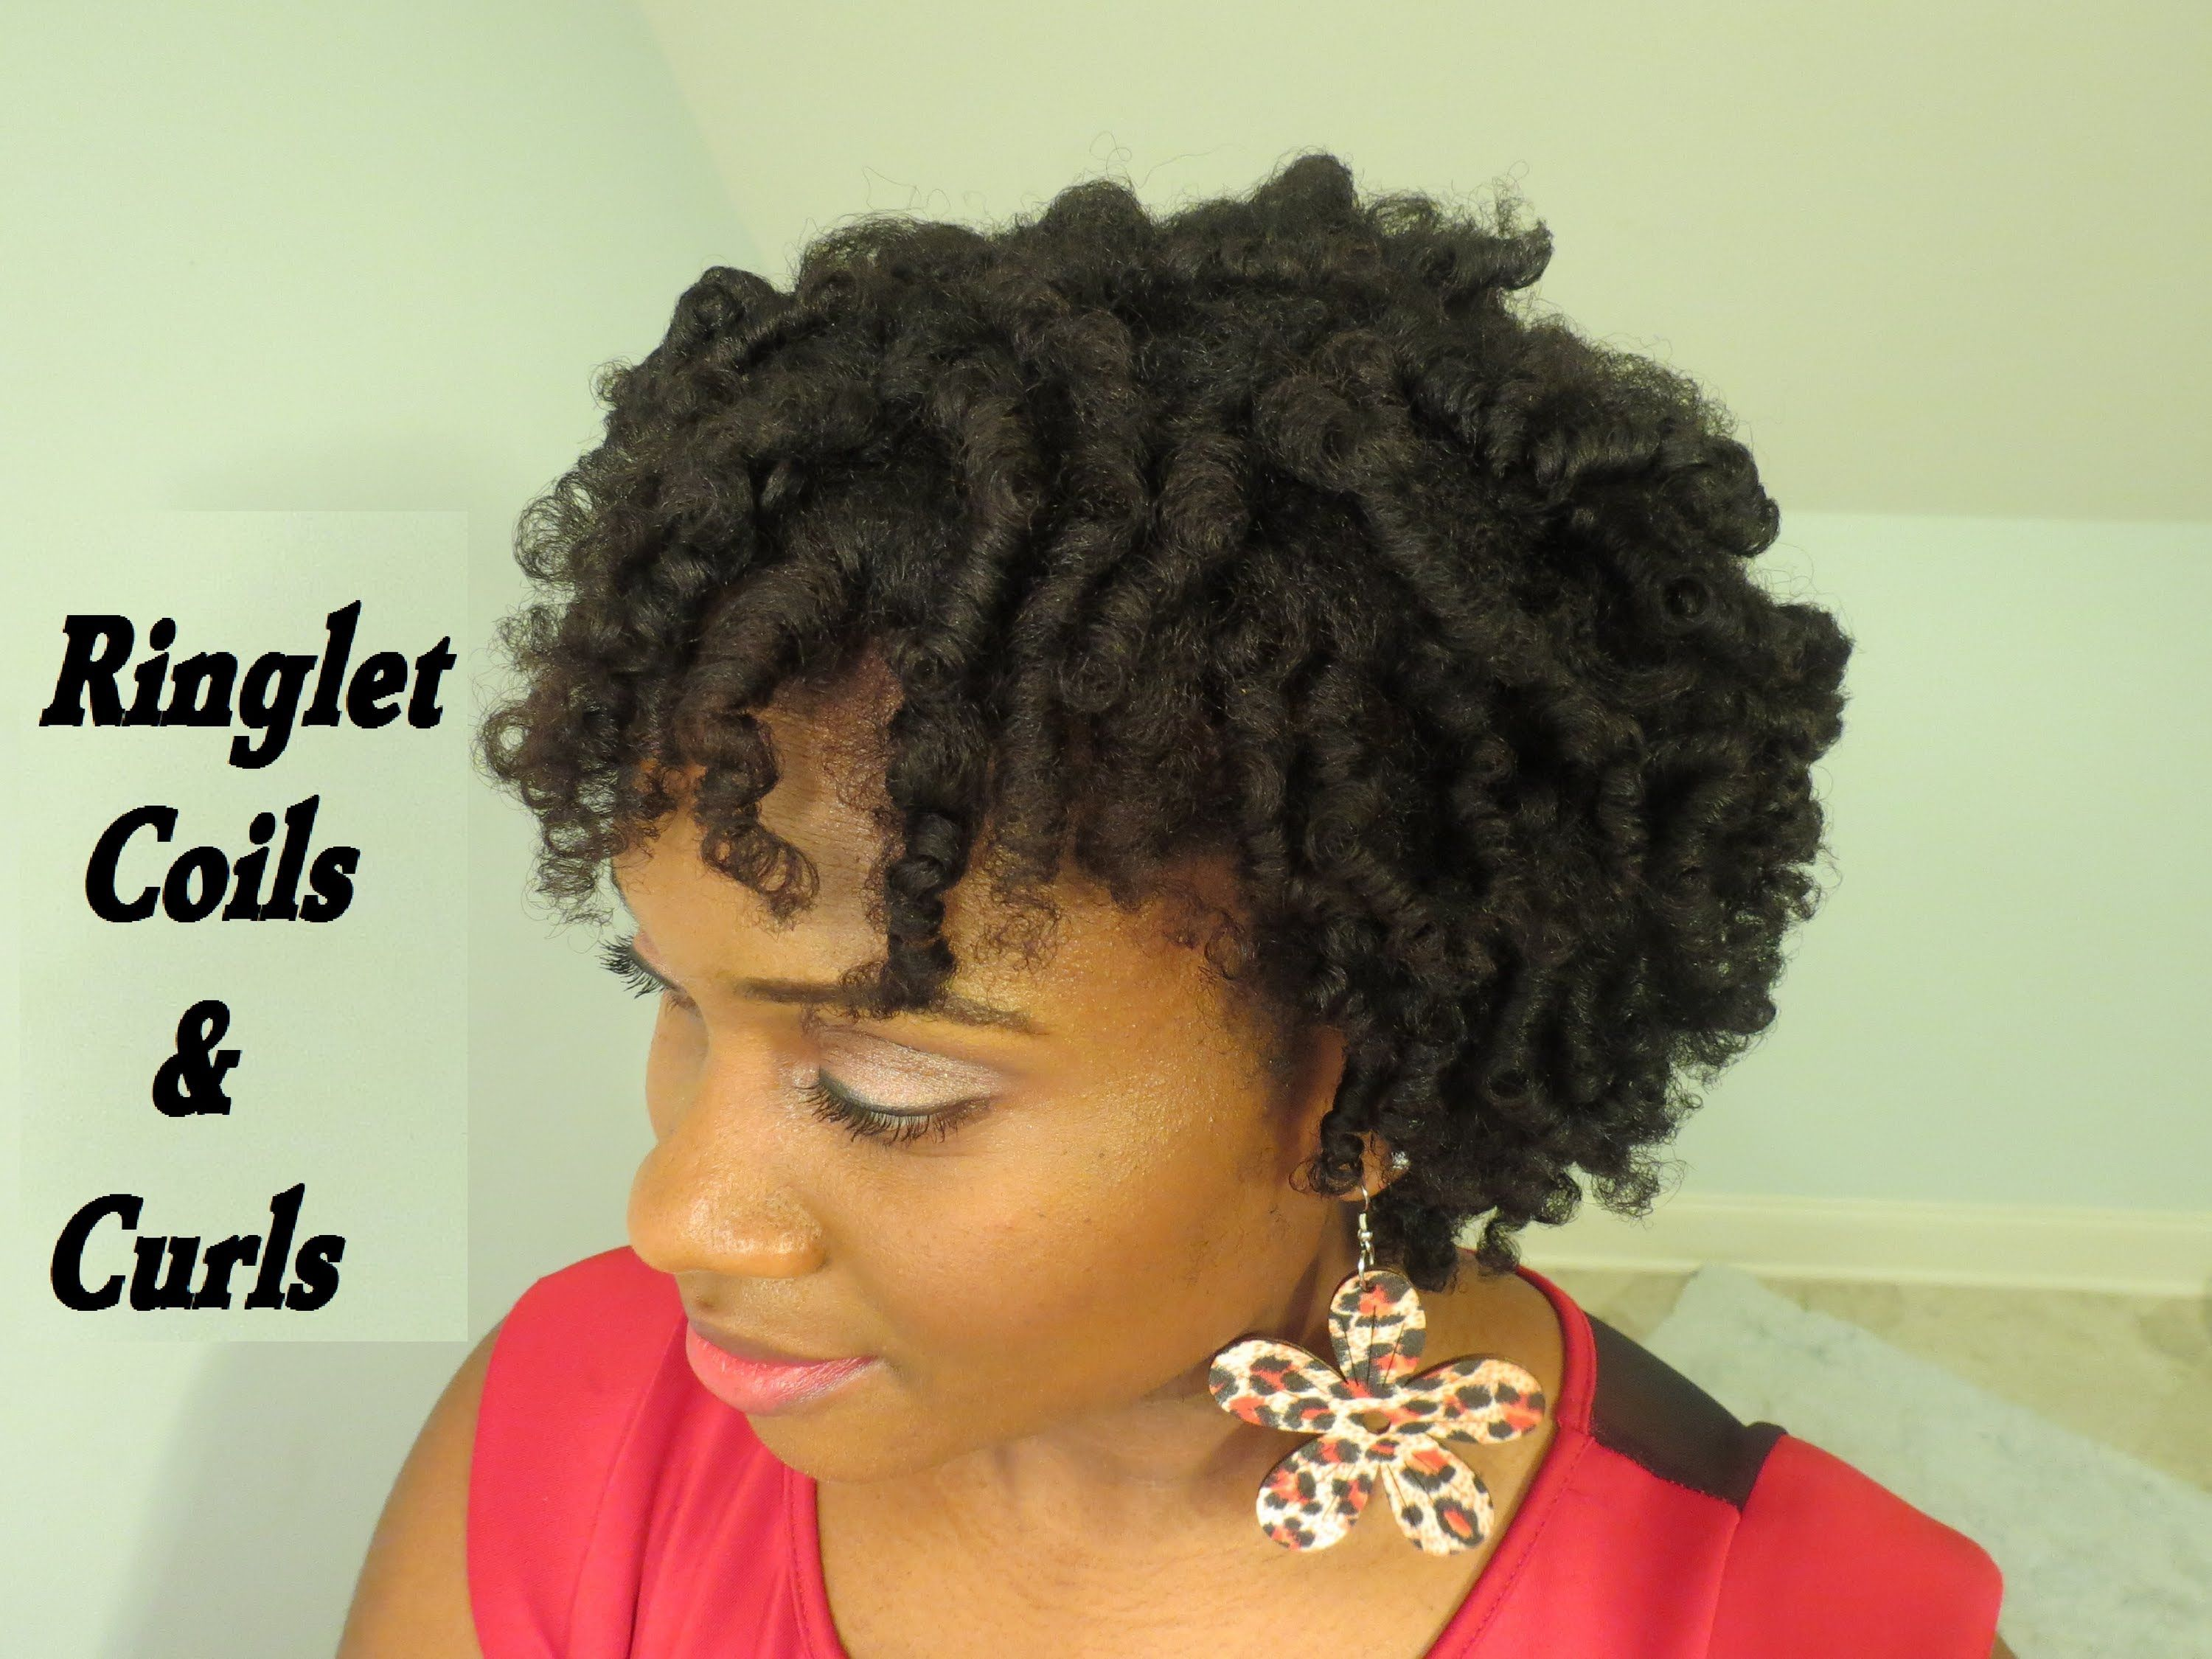 106 Frizz Free Coils & Curls Tutorial on 4c Natural Hair Perm Rod